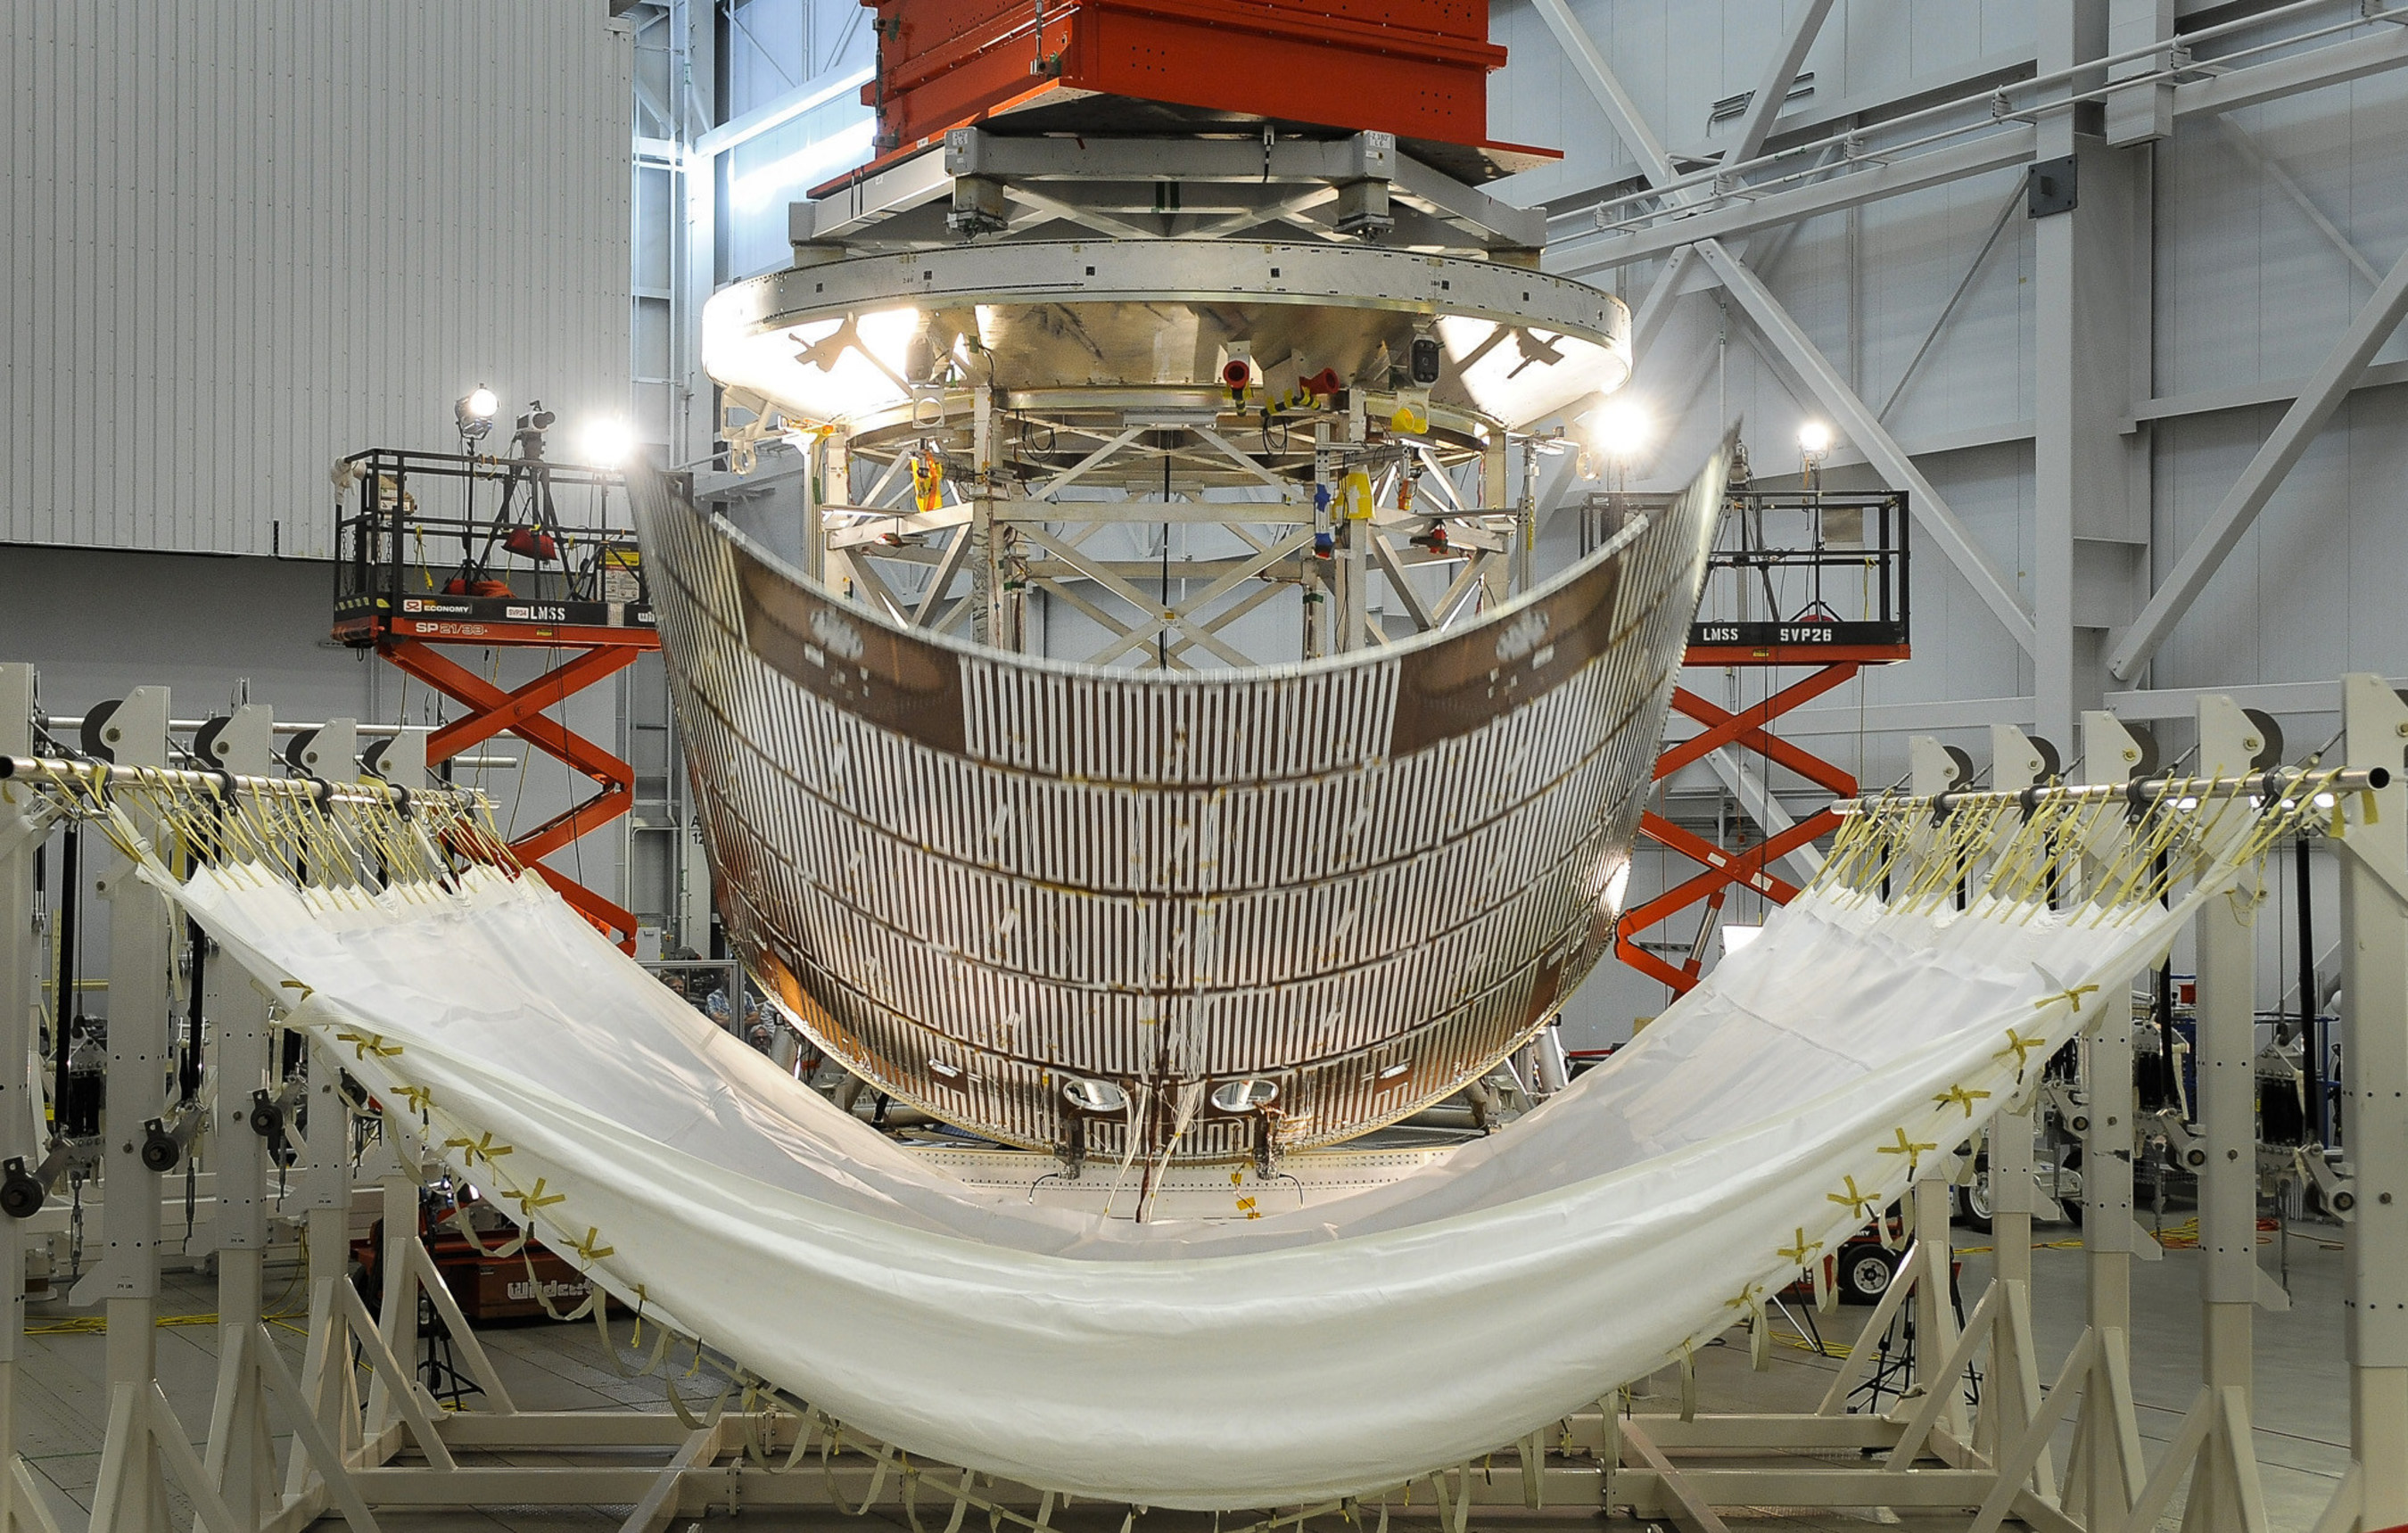 A protective panel for Orion's service module is jettisoned during testing at Lockheed Martin's Sunnyvale, California facility. This test series evaluated design changes to the spacecraft's fairing separation system. Photo Credit: Lockheed Martin